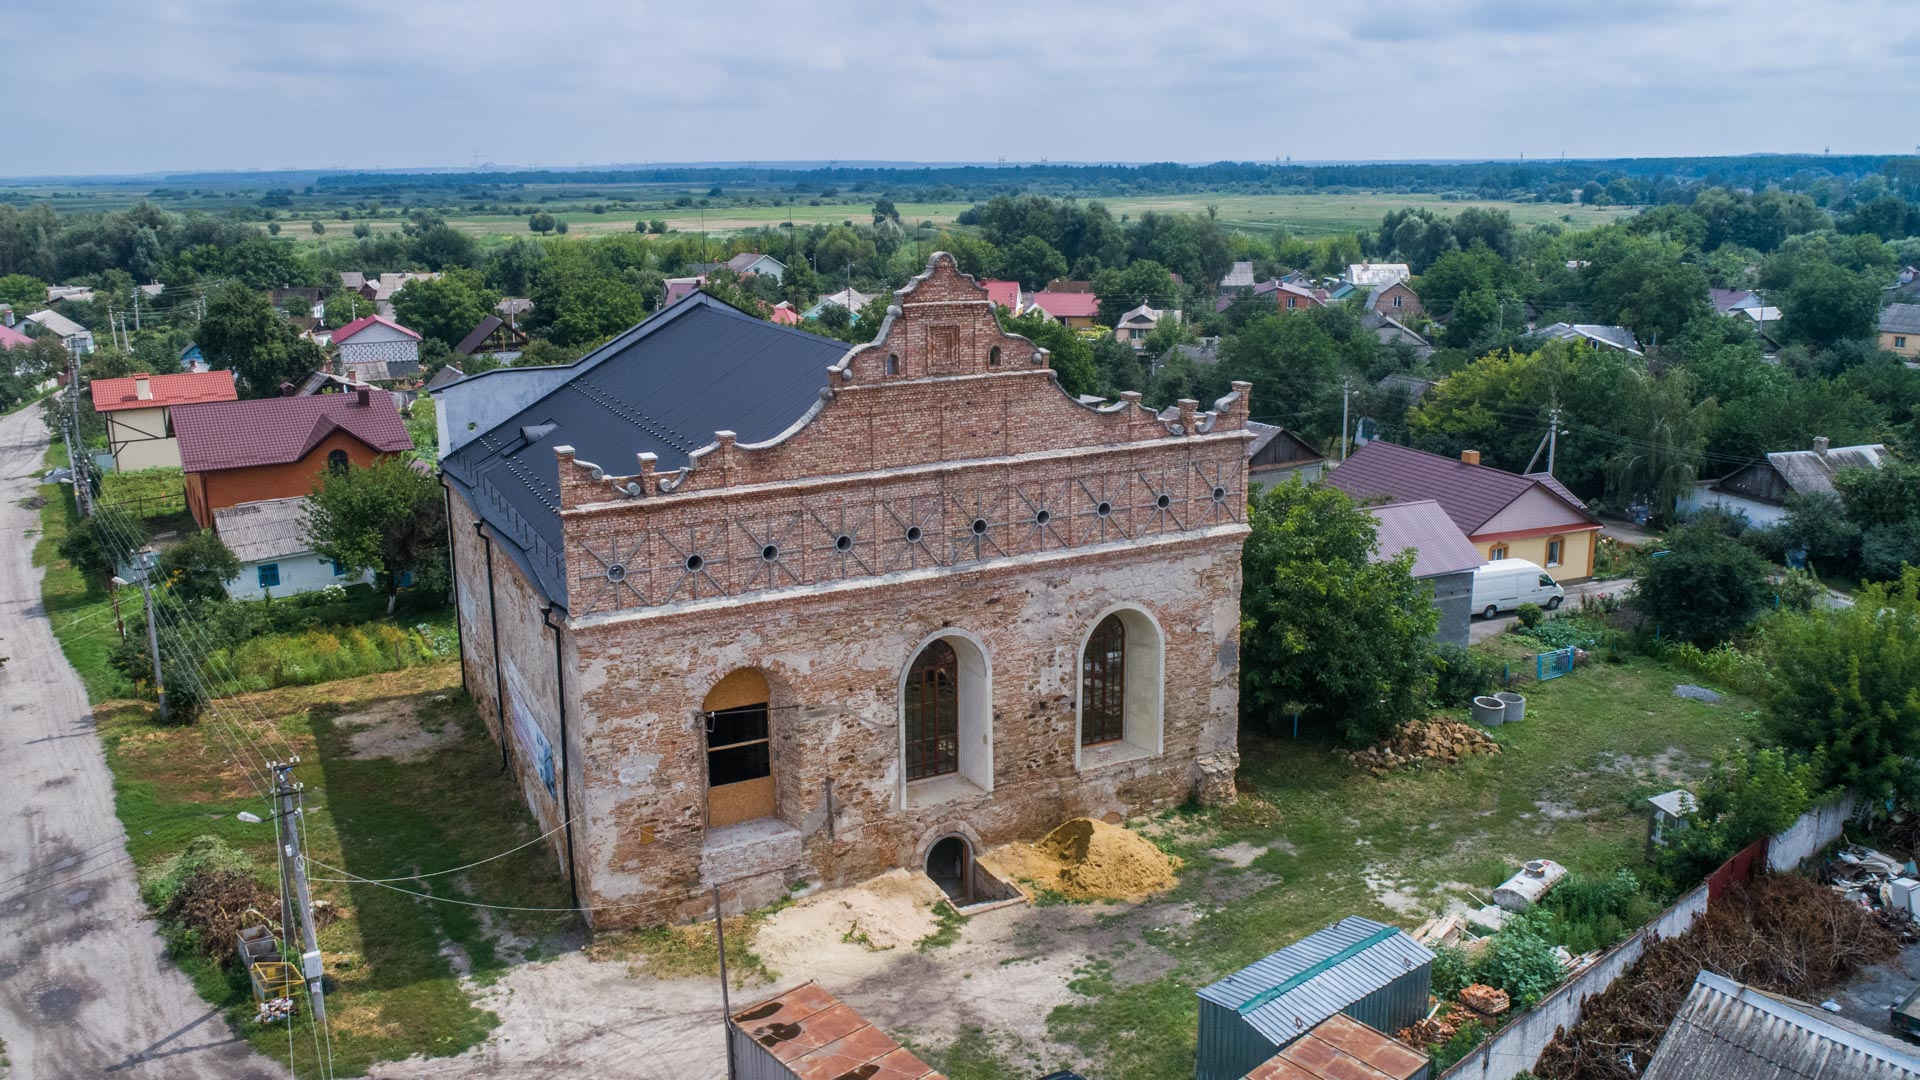 The Synagogue in Ostroh: Reconstruction of the ruins